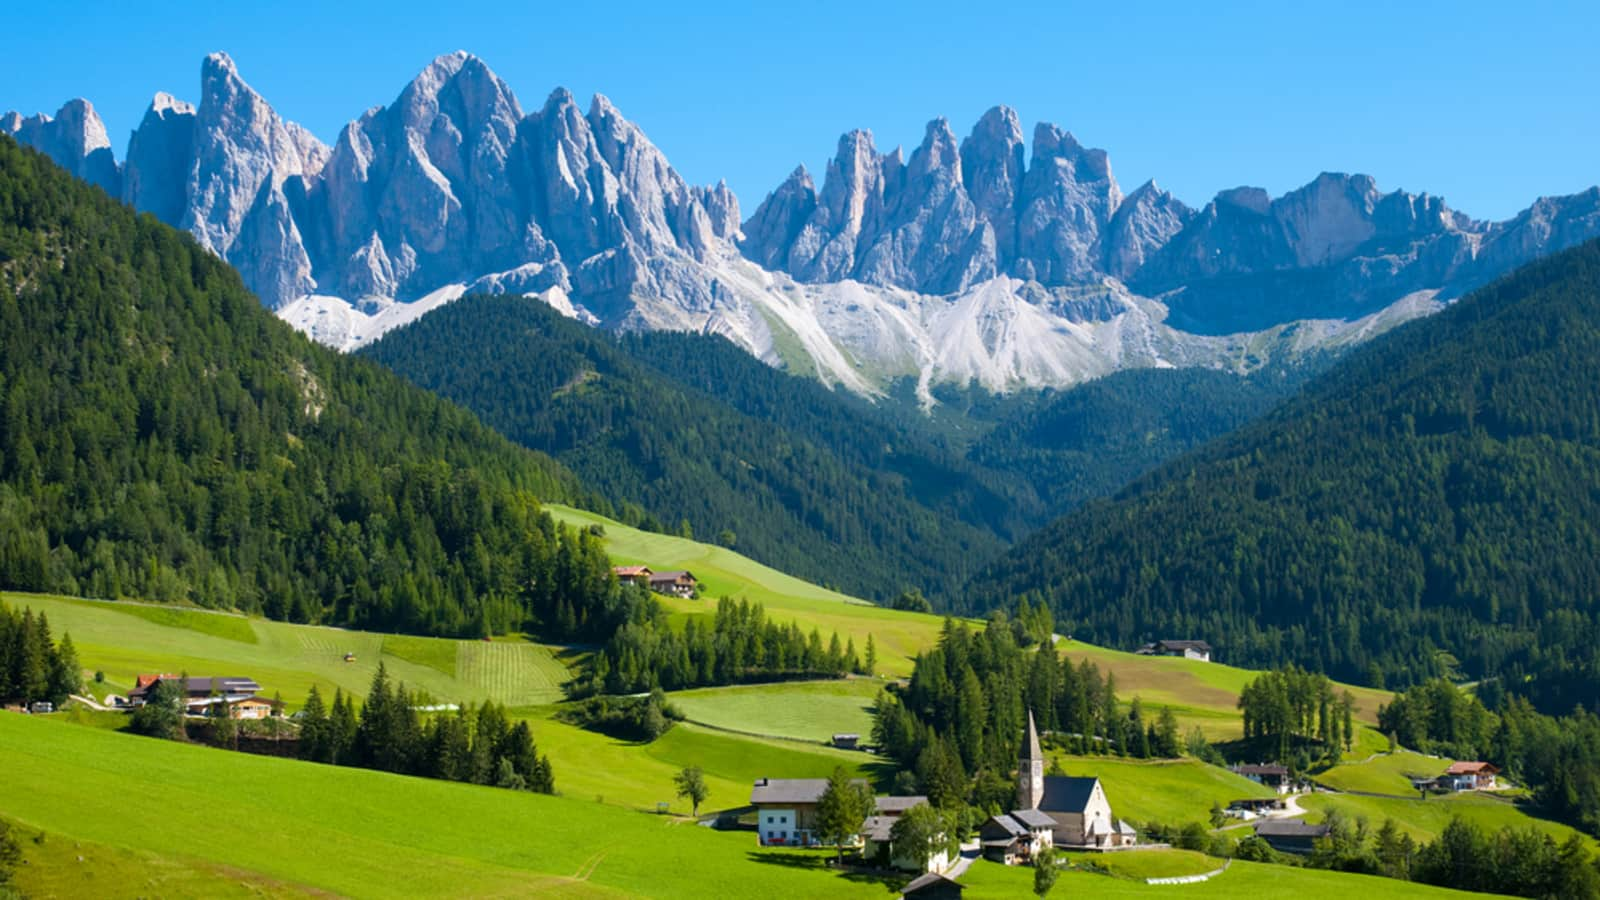 7. Dolomites,Italy - Now that Call Me By Your Name has officially established Northern Italy as the most romantic destination of the year, why not check out the Dolomites in the Northeastern regions of the country? Start your trip in Milan before heading up to the Italian Alps (which, unlike the Swiss Alps, are still in favor). Word to the wise: hiking these mountains in the middle of the summer is a sweat-inducing feat, so pack (and prepare) accordingly.